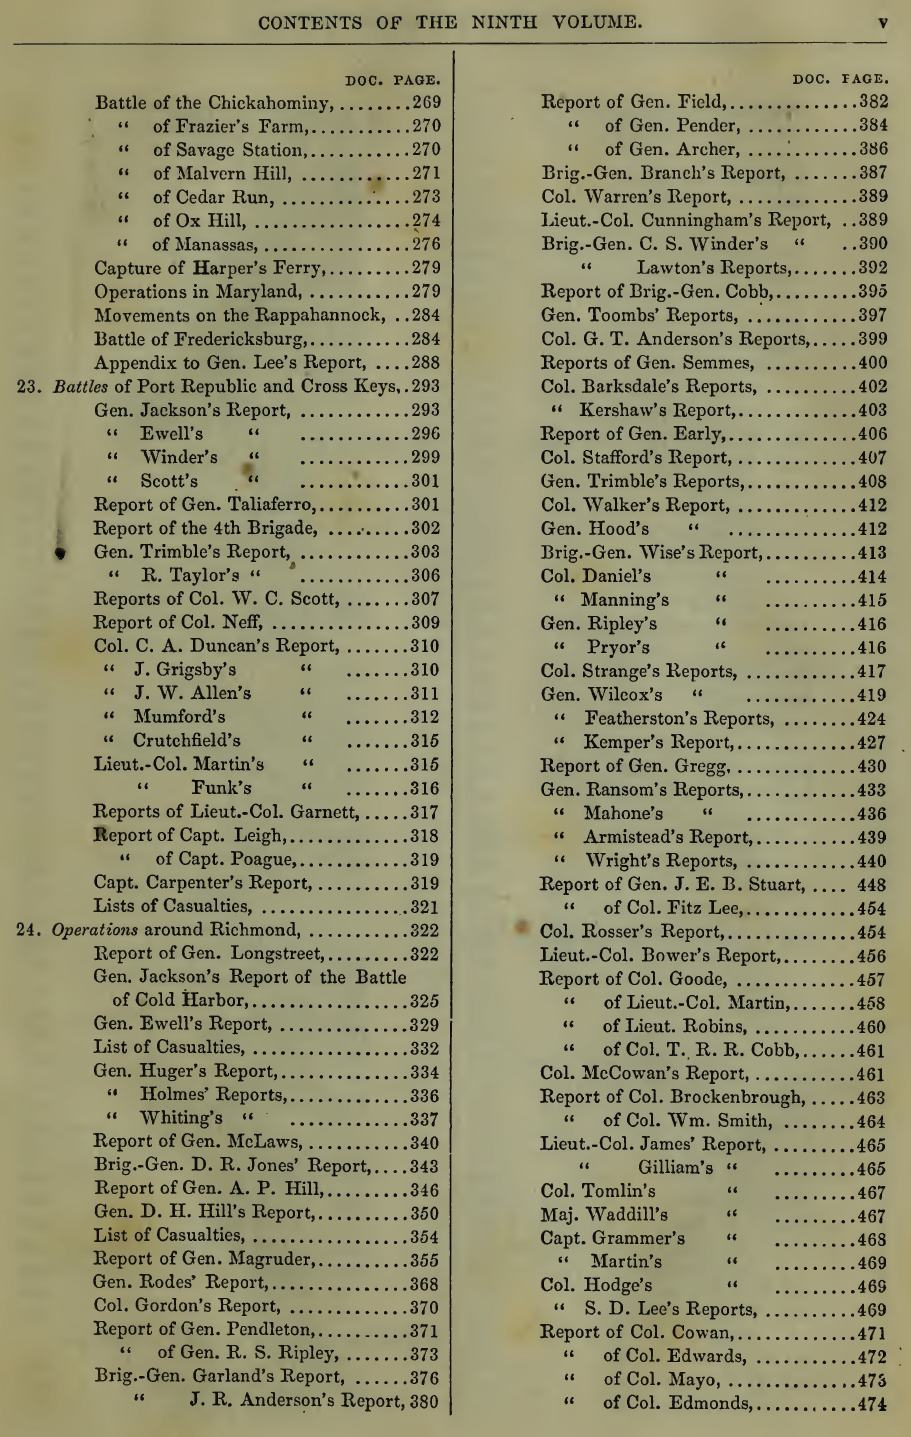 One page from the table of contents from Volume 9 of the Rebellion Record